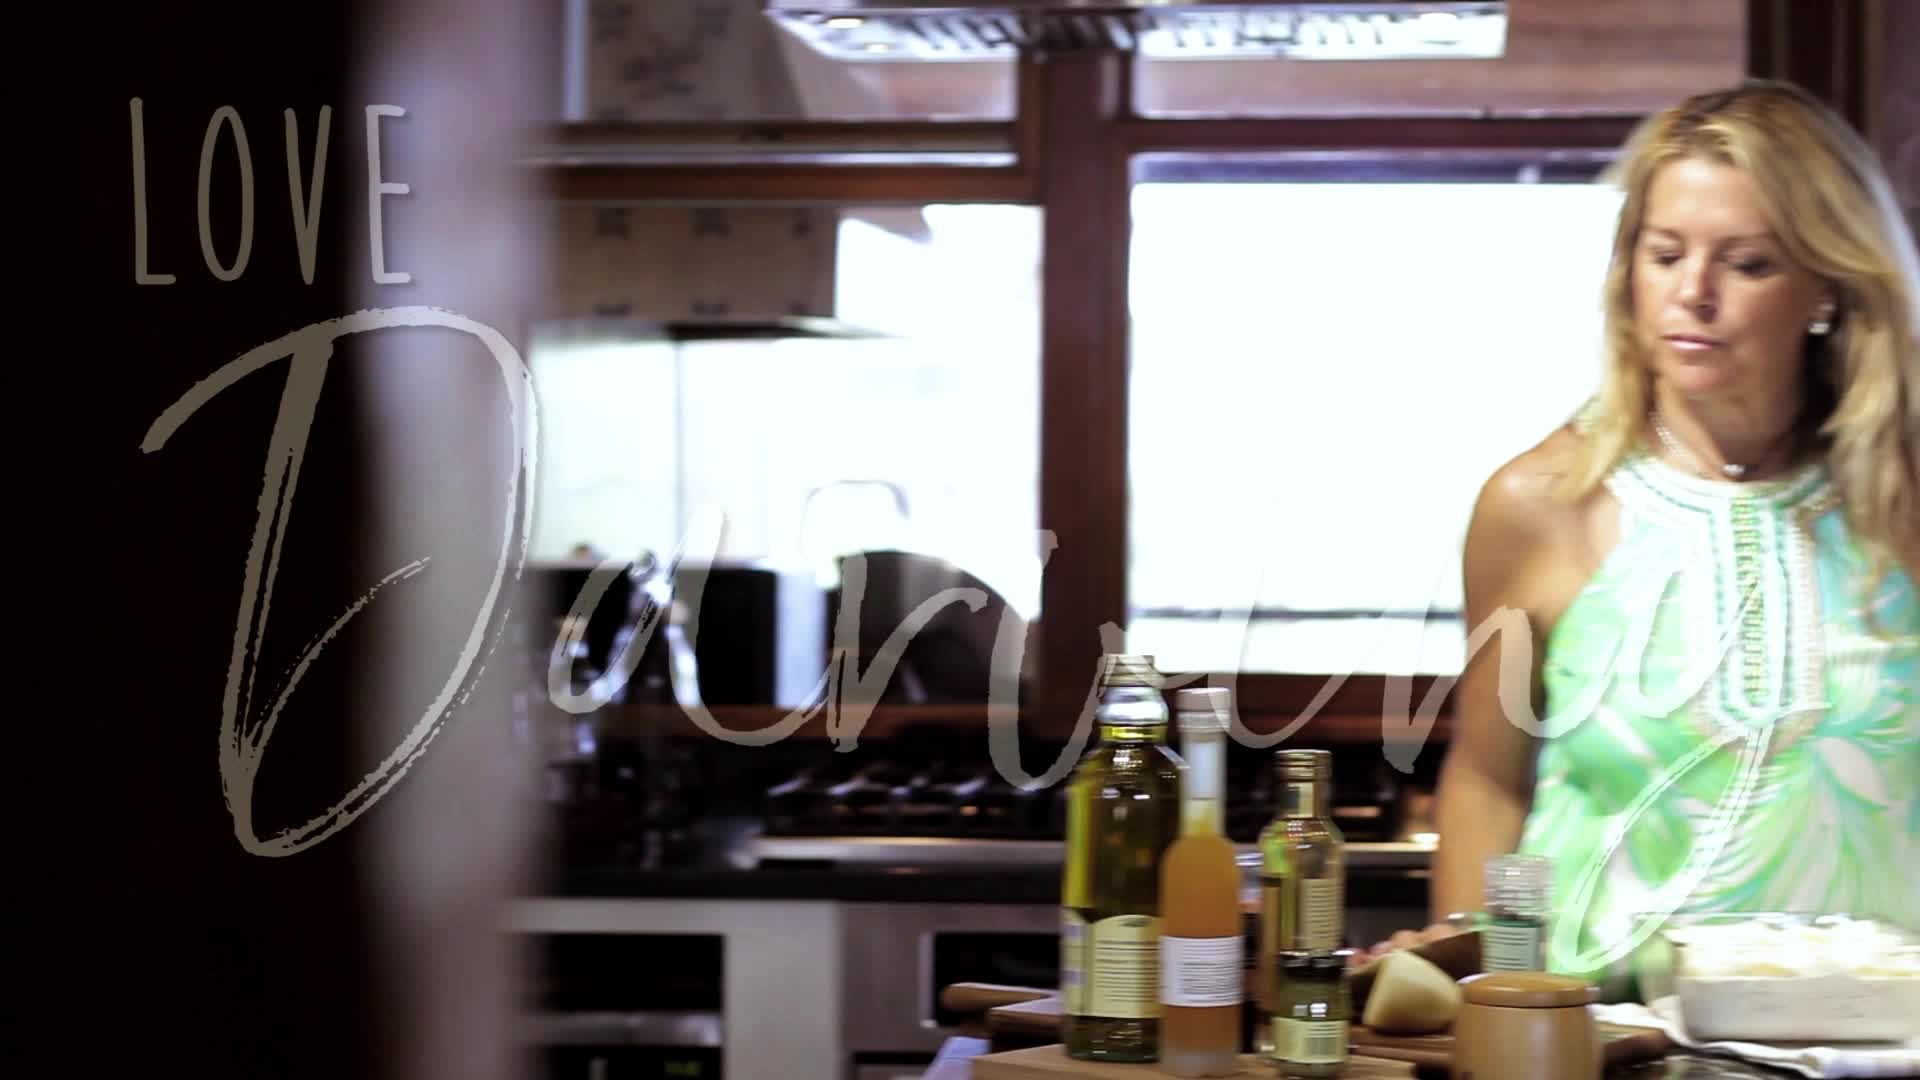 The Love, Darviny Show - How to Cook Like a French Gourmande -  Trailer